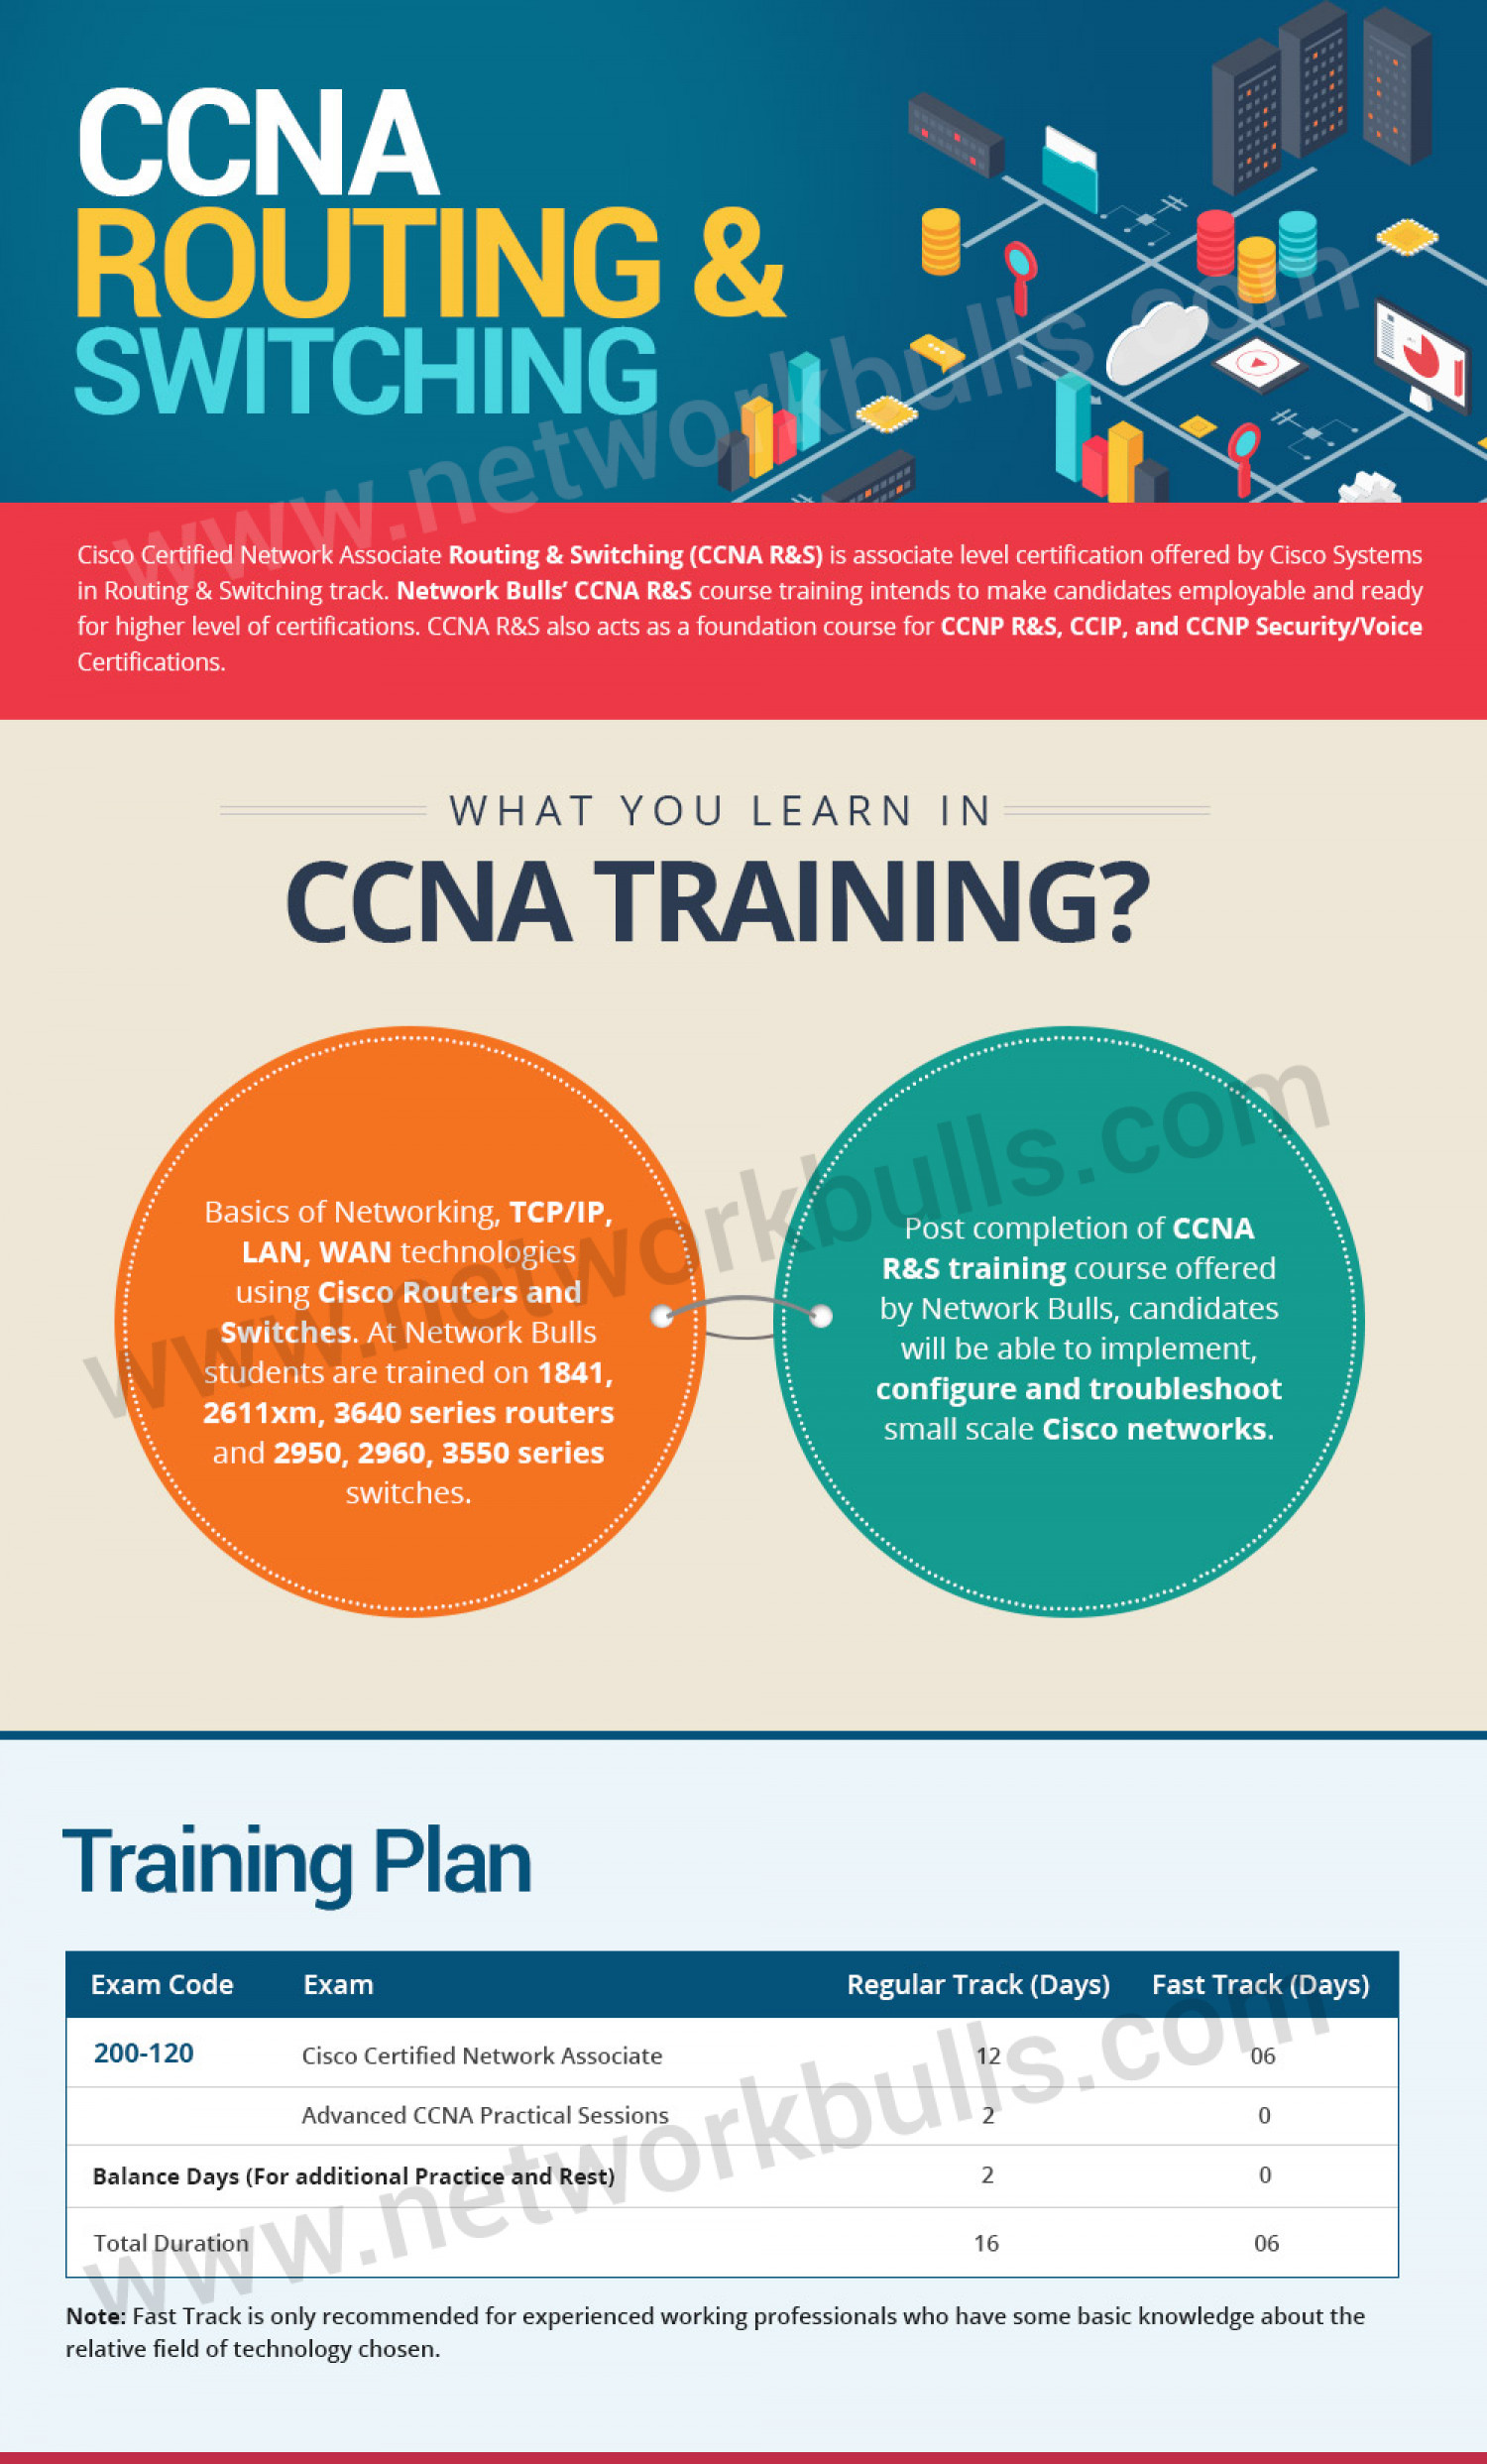 Ccna Routing And Switching Certifications And Its Benefits Visual